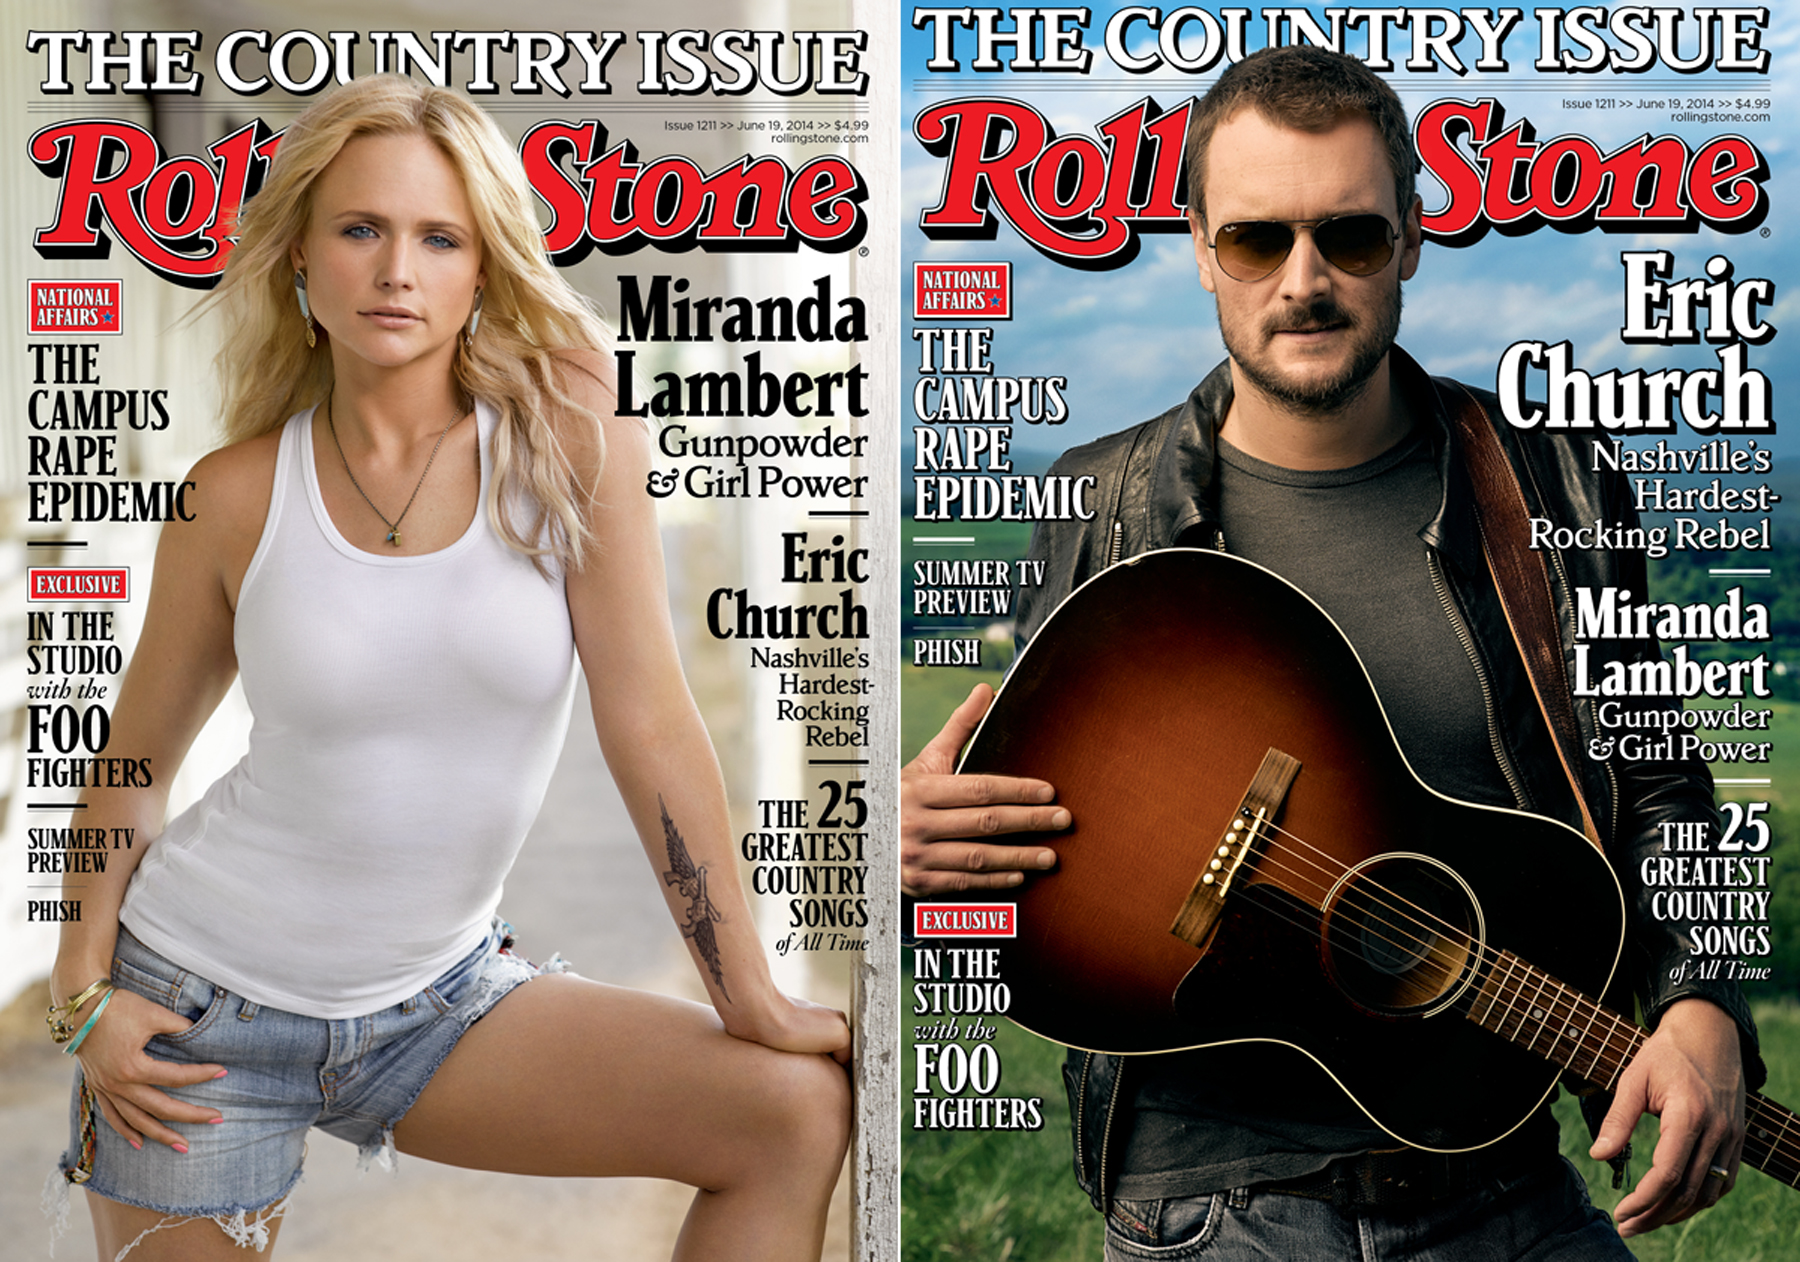 Eric Church and Miranda Lambert: Inside Rolling Stone's Country Issue